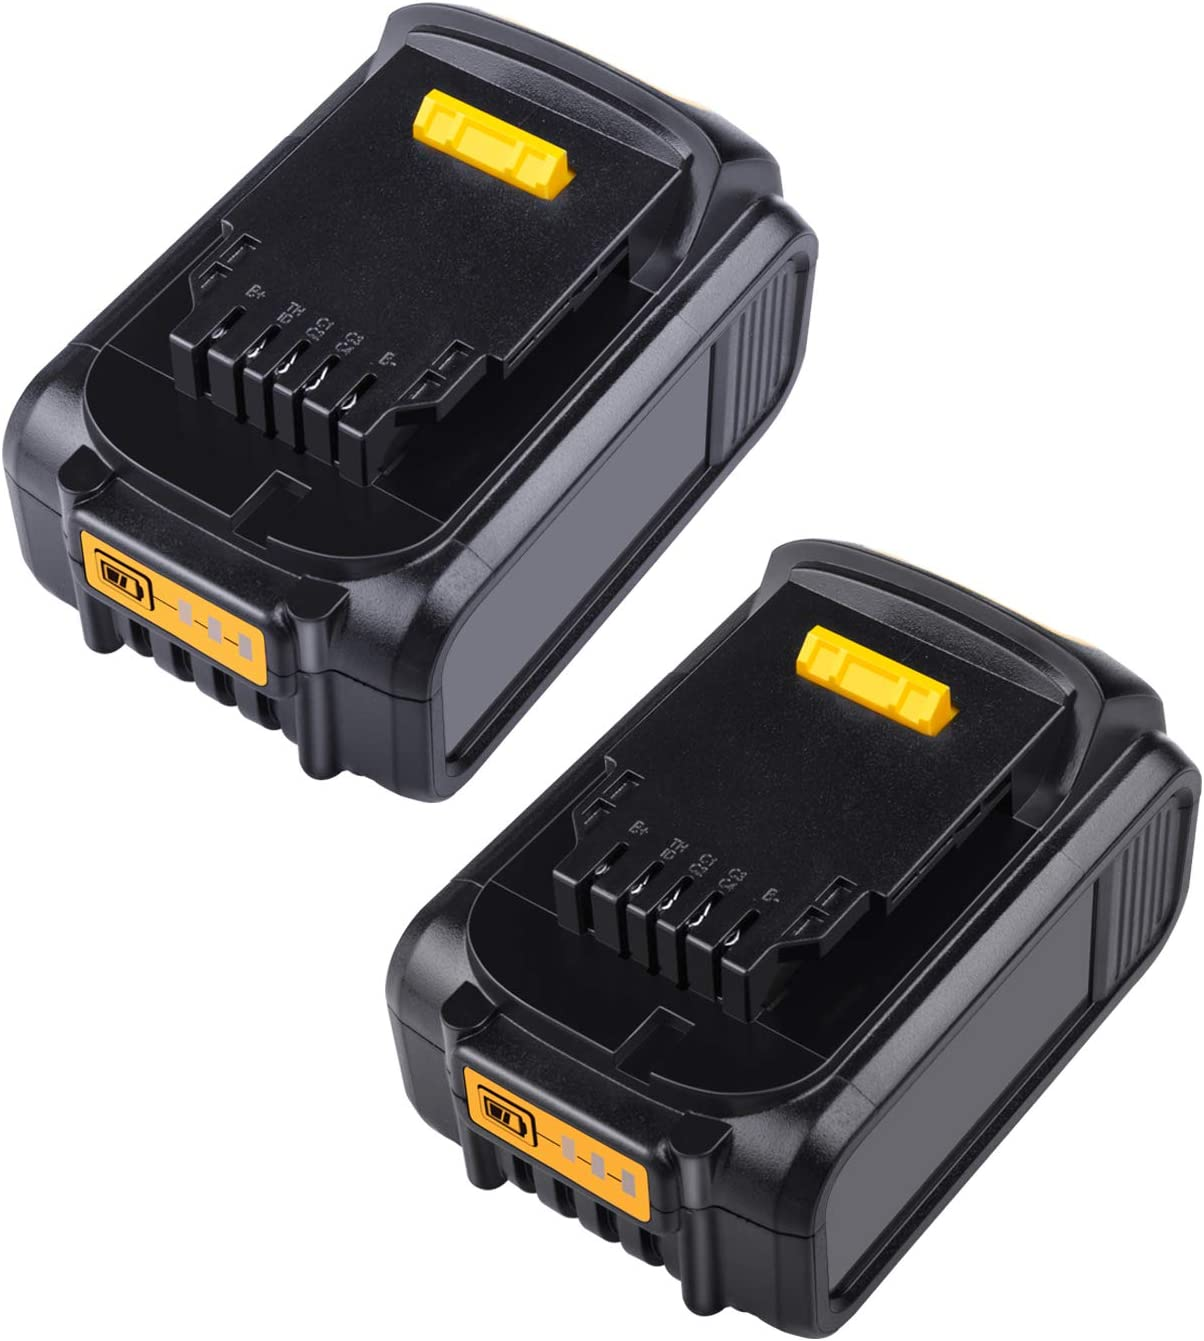 2Pack Replacement for Dewalt 20V Lithium Battery MAX DCB180 DCB181 DCB200 DCB200-2 DCB201 DCB203 DCB204 DCB204BT-2 DCB205 DCB205-2 DCD985B DCD771C2 DCS355D1 DCD790B